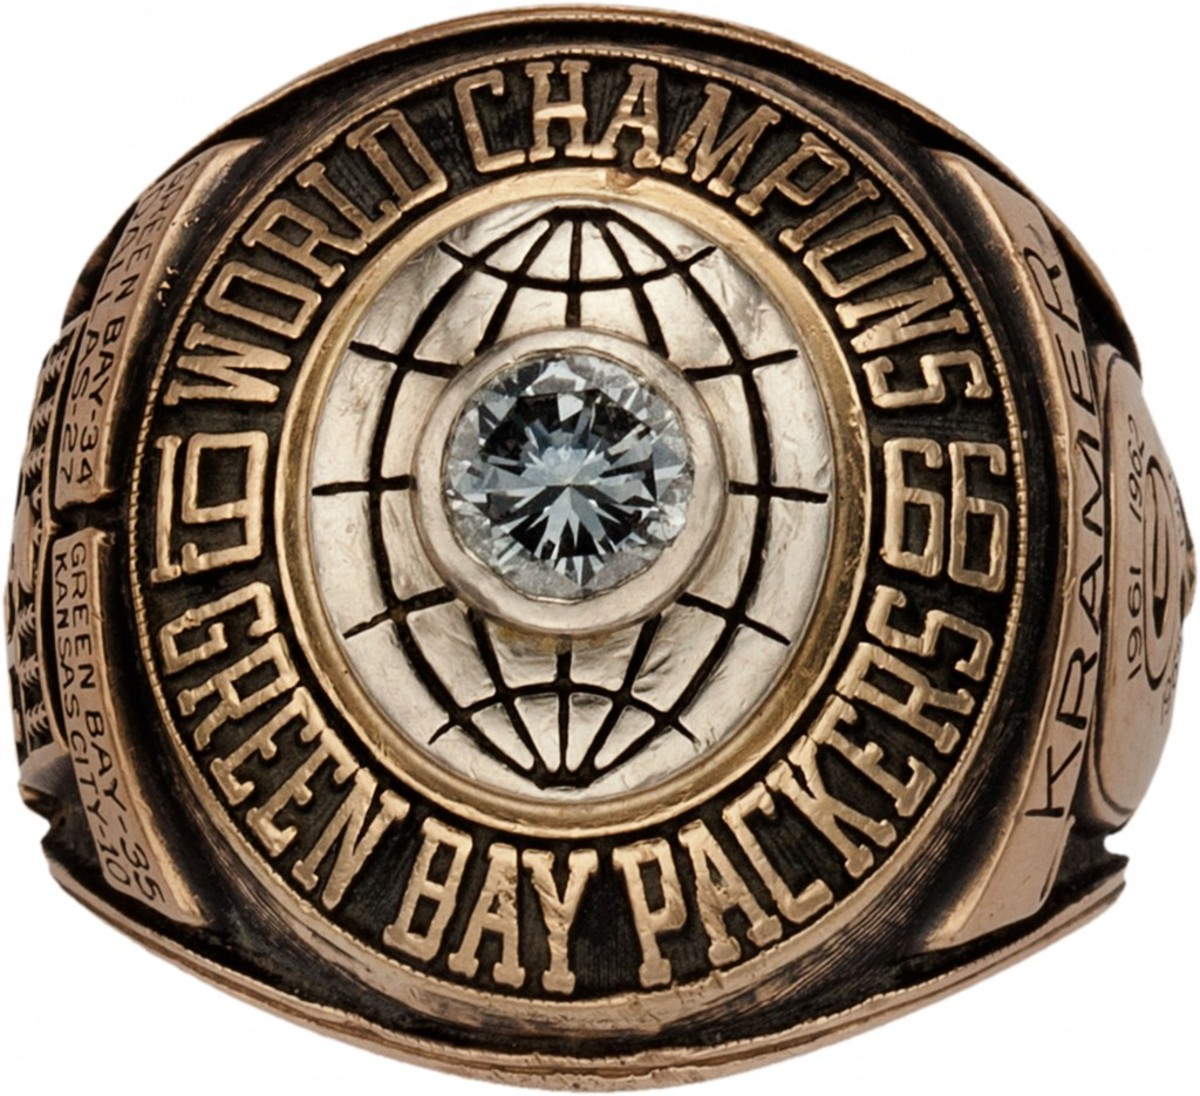 The most significant NFL Championship ring ever offered at auction - 1967 Green Bay Packers Super Bowl I Championship Ring Presented to Jerry Kramer Heritage Auctions-1